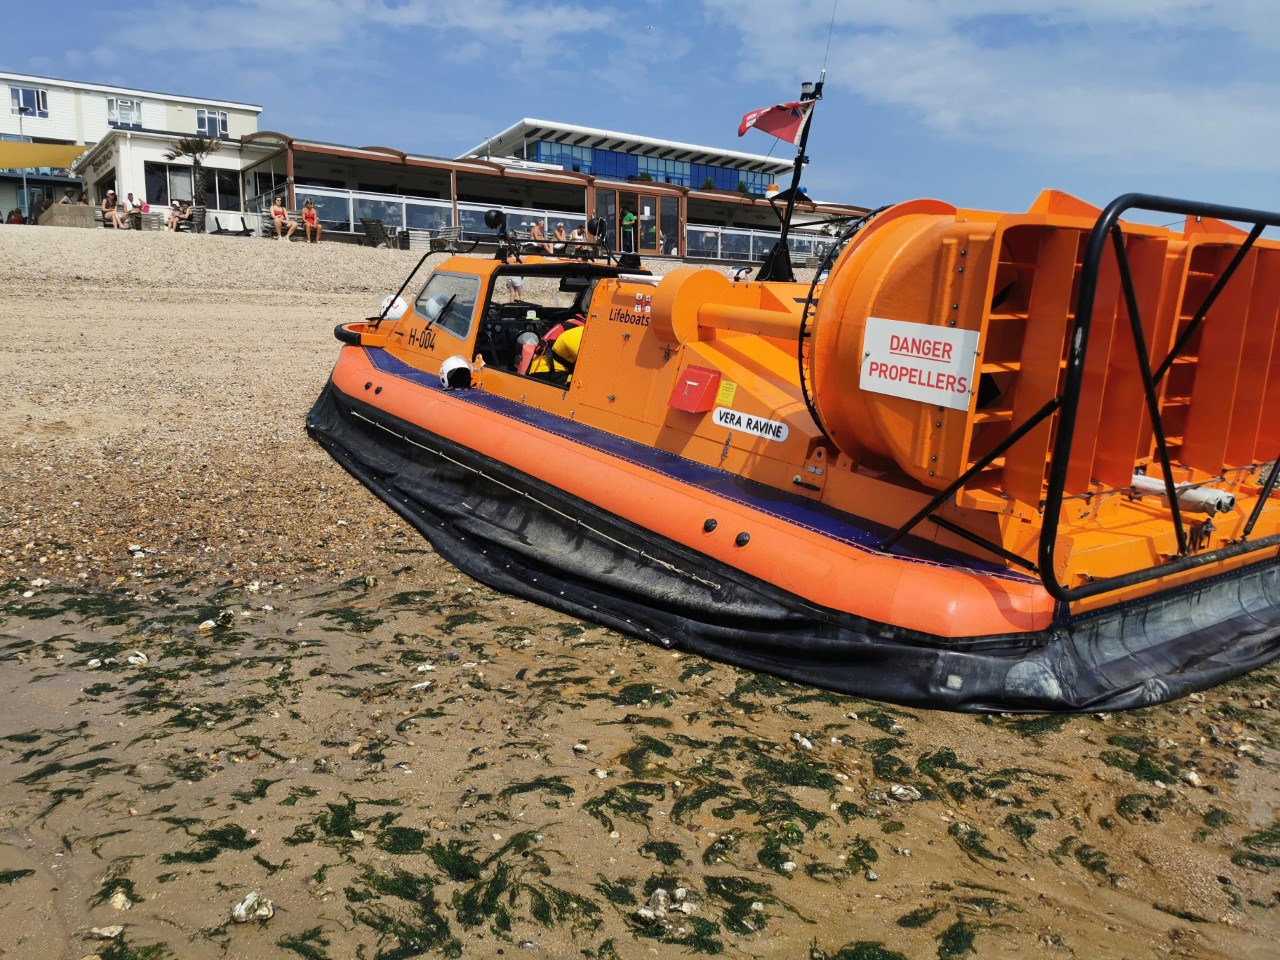 Southend RNLI's hovercraft on the beach